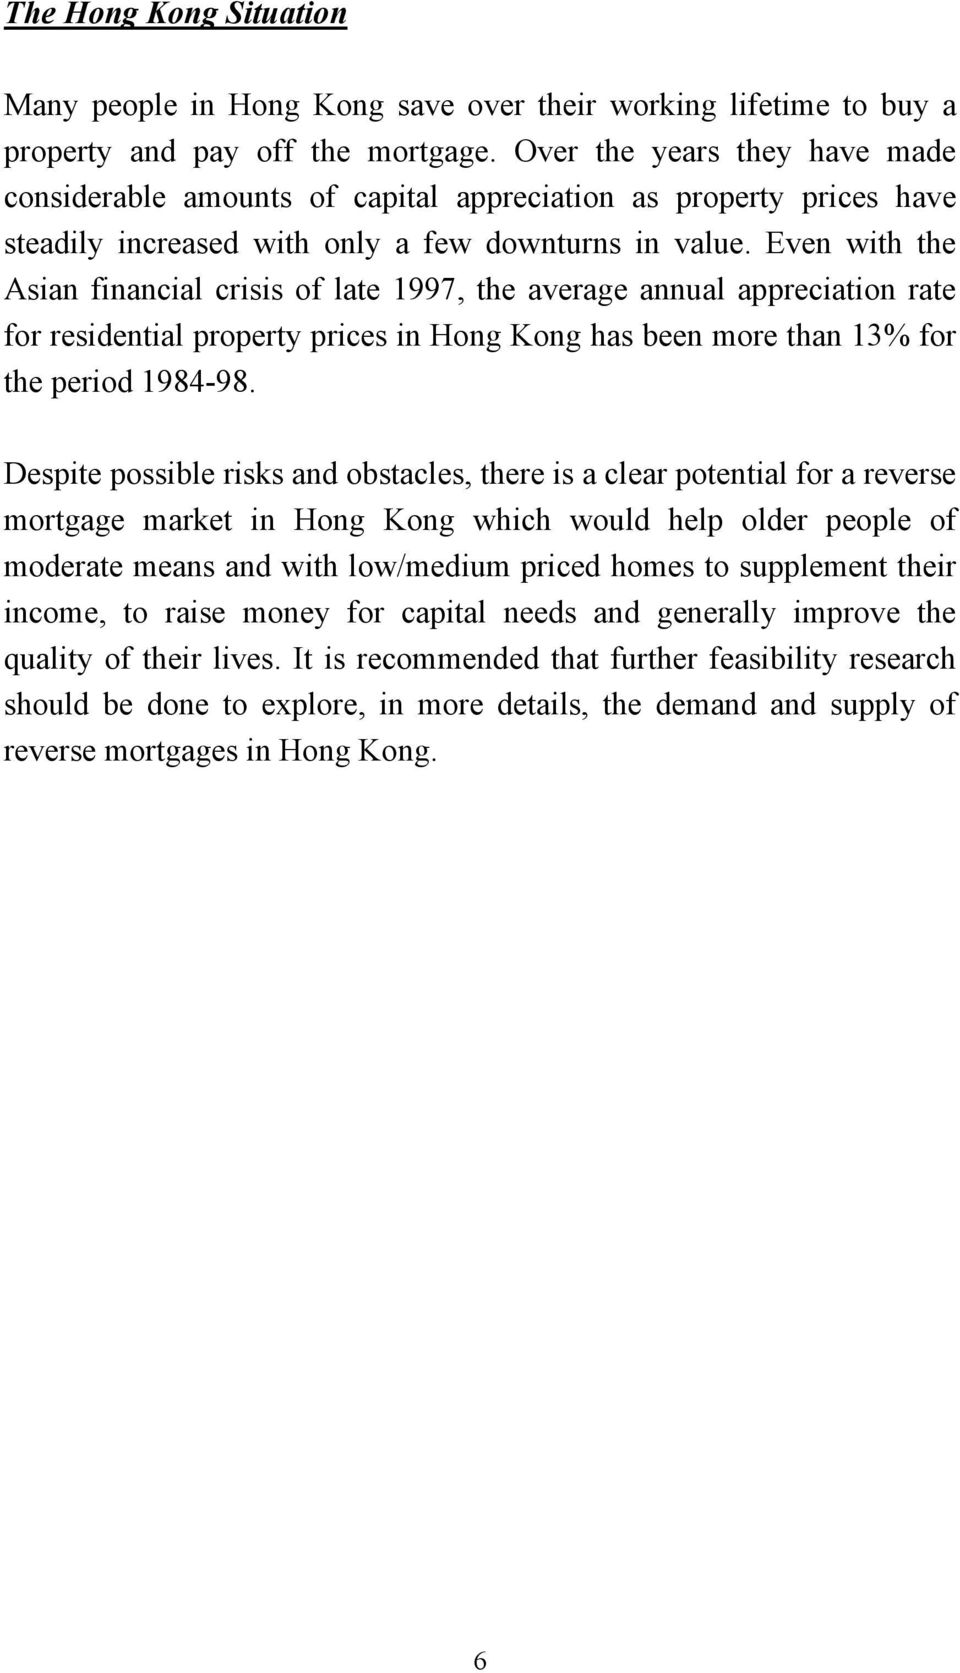 Even with the Asian financial crisis of late 1997, the average annual appreciation rate for residential property prices in Hong Kong has been more than 13% for the period 1984-98.